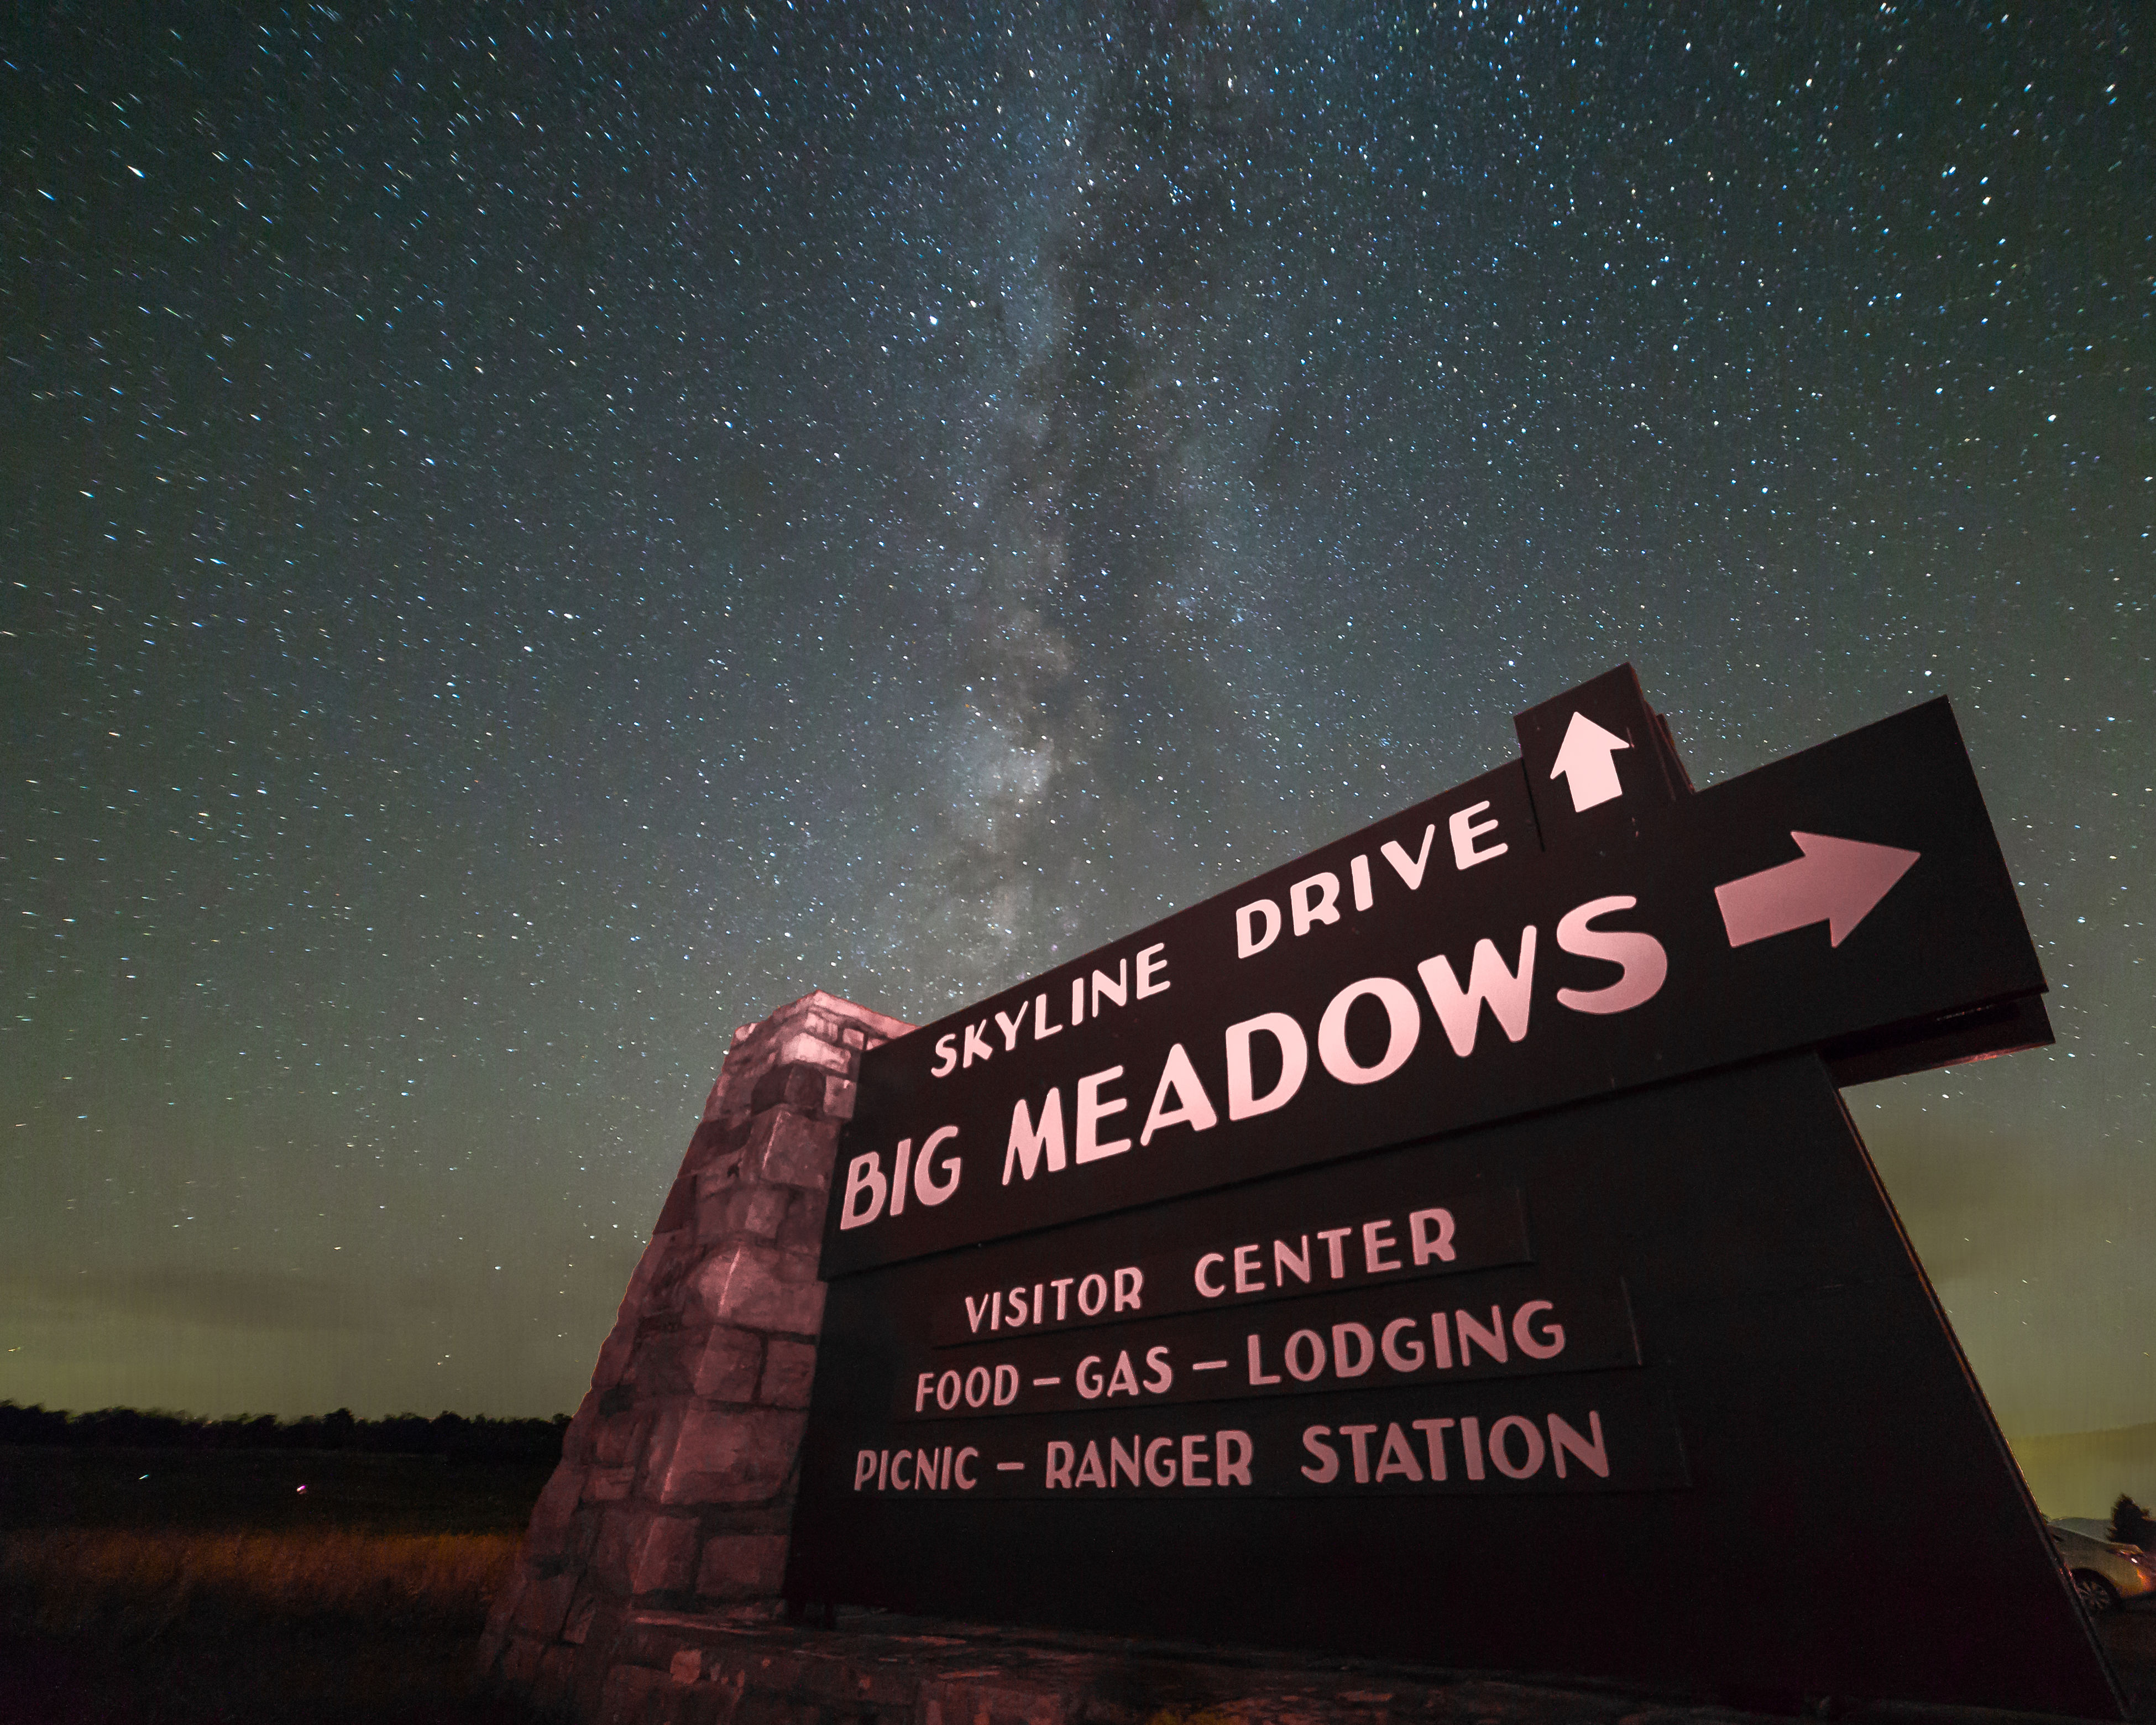 """Sky""-line Drive The Milky Way shines above the road sign pointing the way to Skyline Drive and Big Meadows in Shenandoah National Park Astronomy Astrophotography Galaxy Milky Way National Park Night No People Outdoors Park Shenandoah National Park Sky Space Star - Space Stars Text"